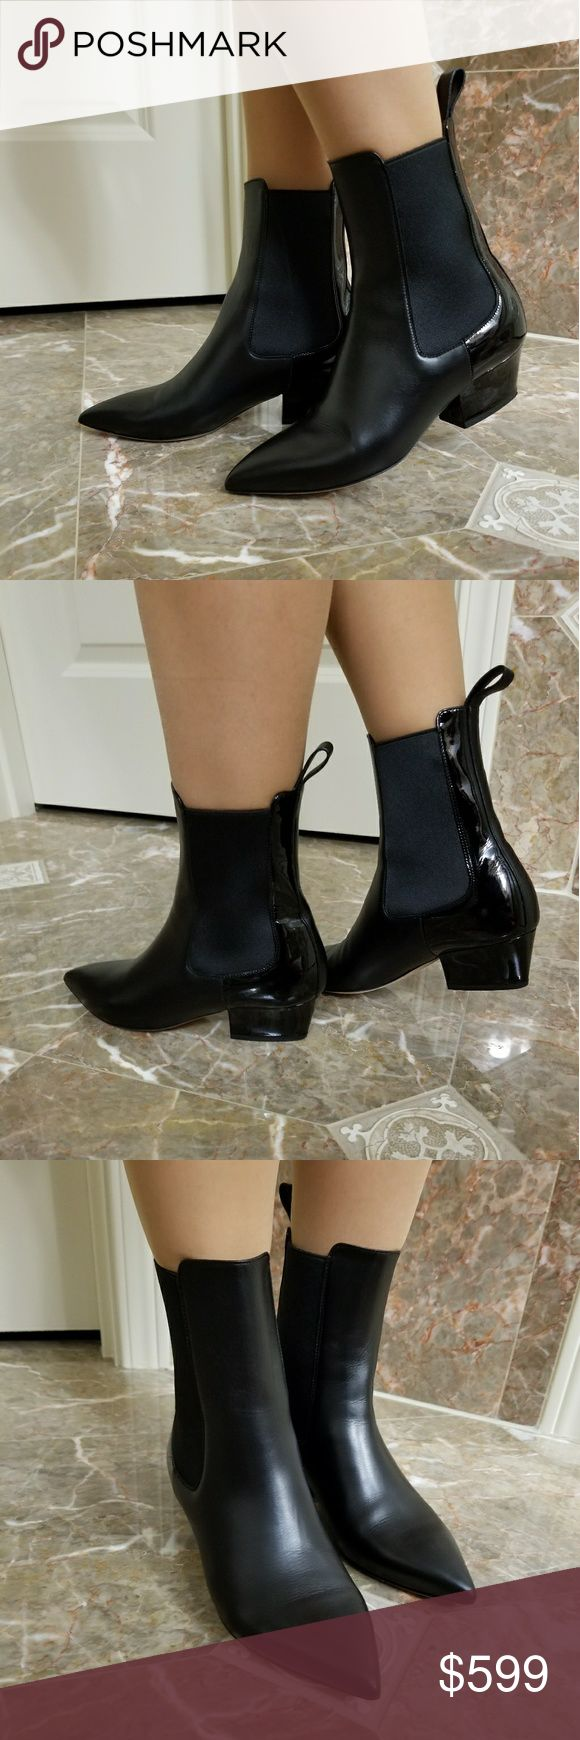 Valentino Black Boots👞 Condition Very Good! the Leather is perfect only sign of wear is on the sole of shoe. Very comfortable.👍 Valentino Shoes Ankle Boots & Booties